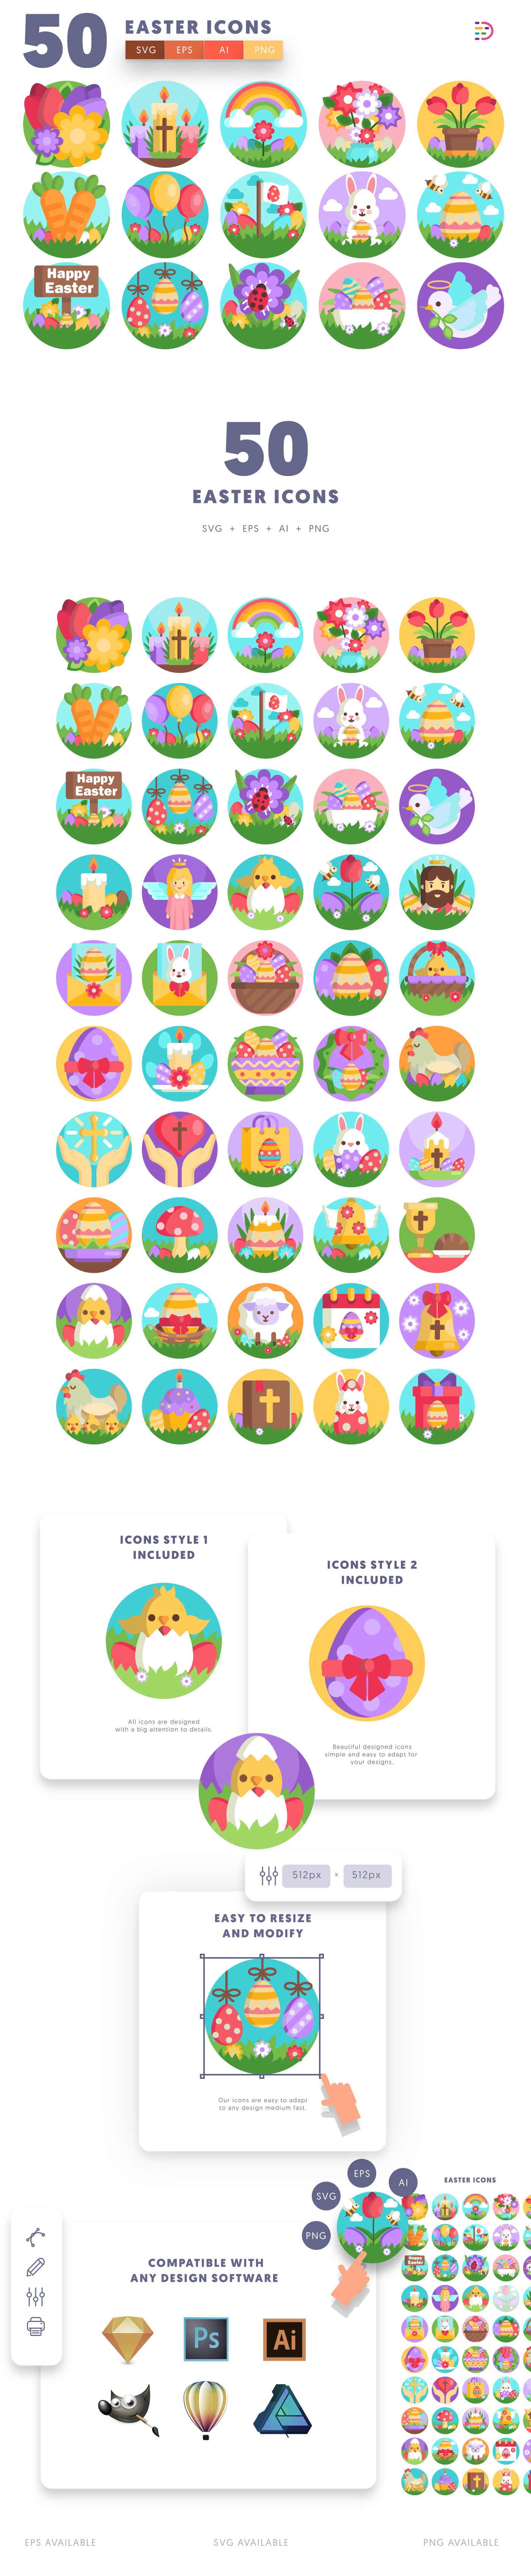 50 Easter Icons list